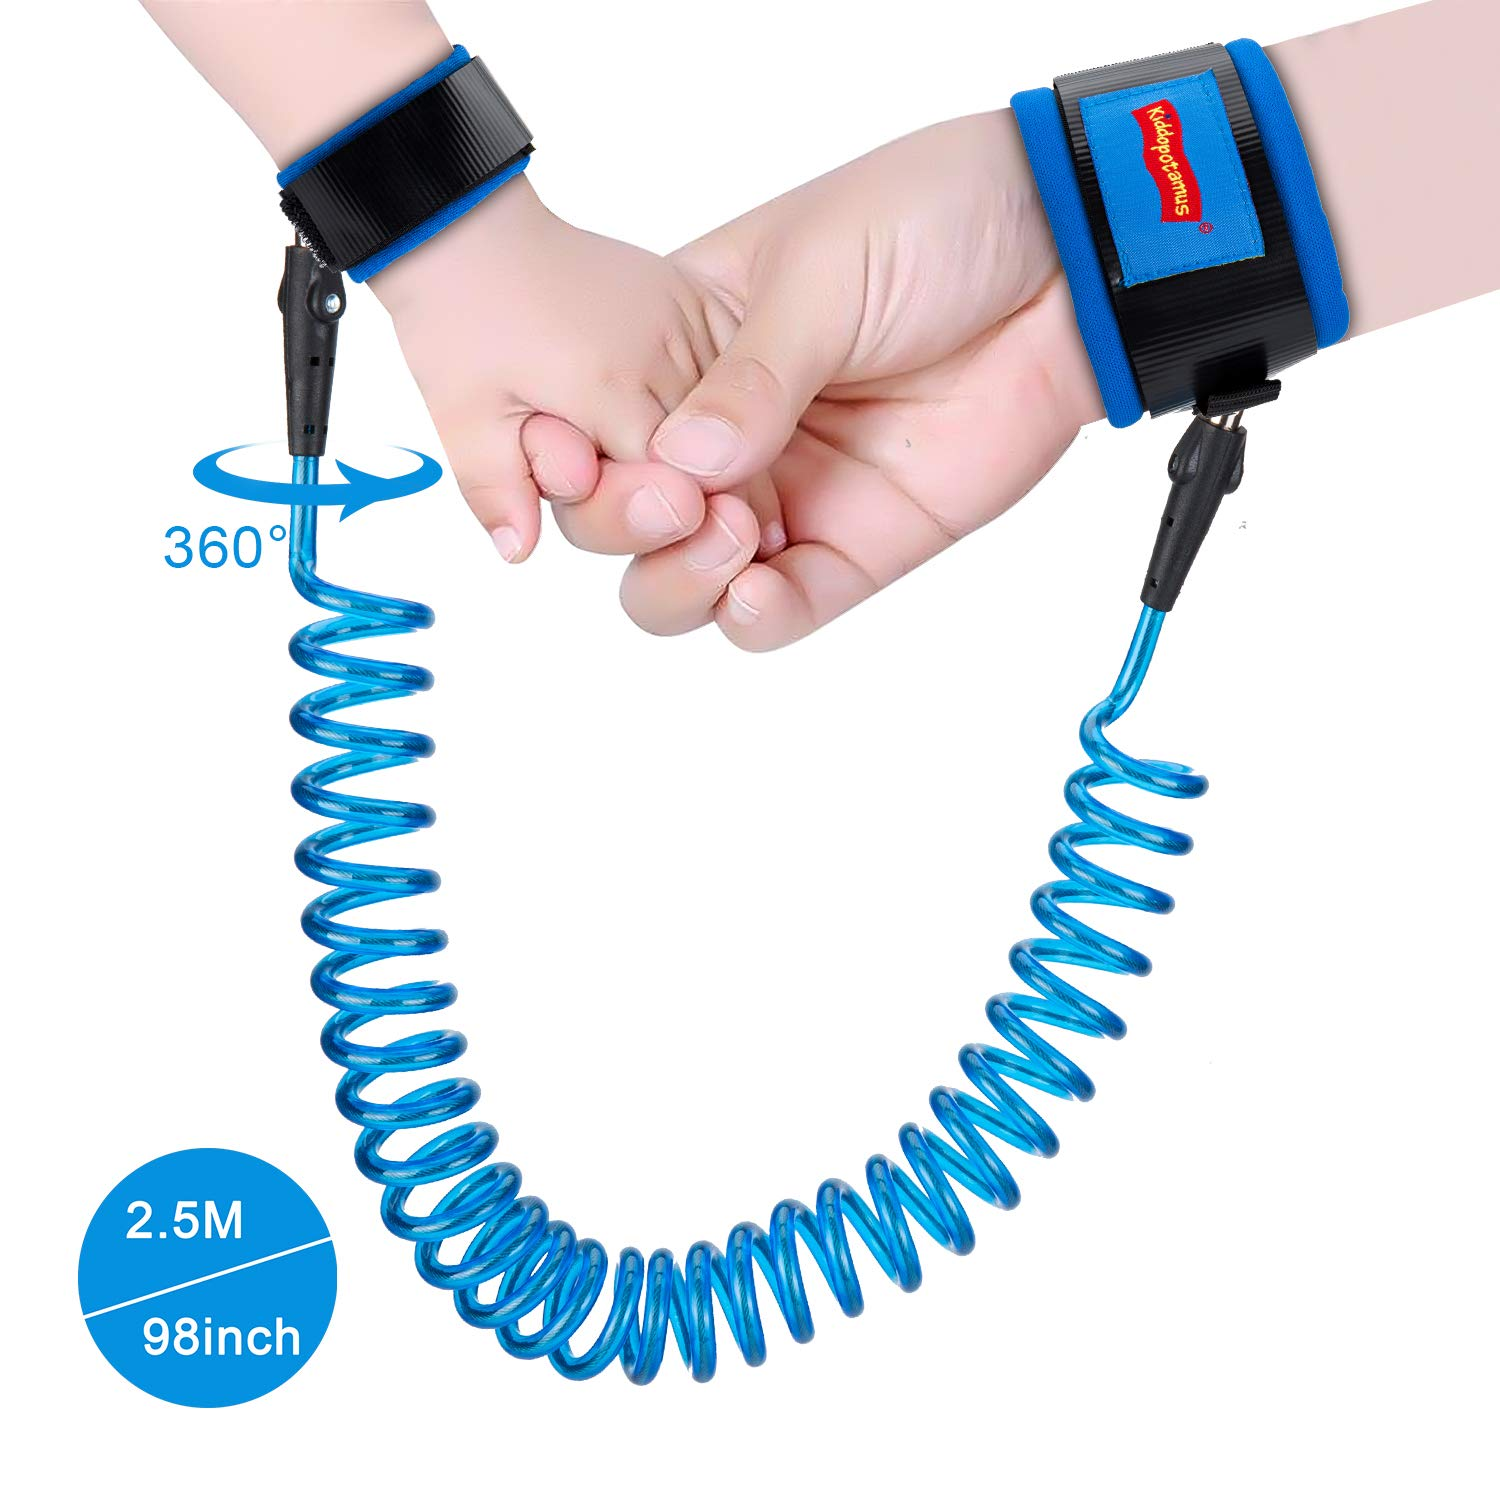 Anti Lost Wrist Link, 360 Degree Rotating Connectors,Outdoor Safety Harness for Children, Kids Twins' Dad